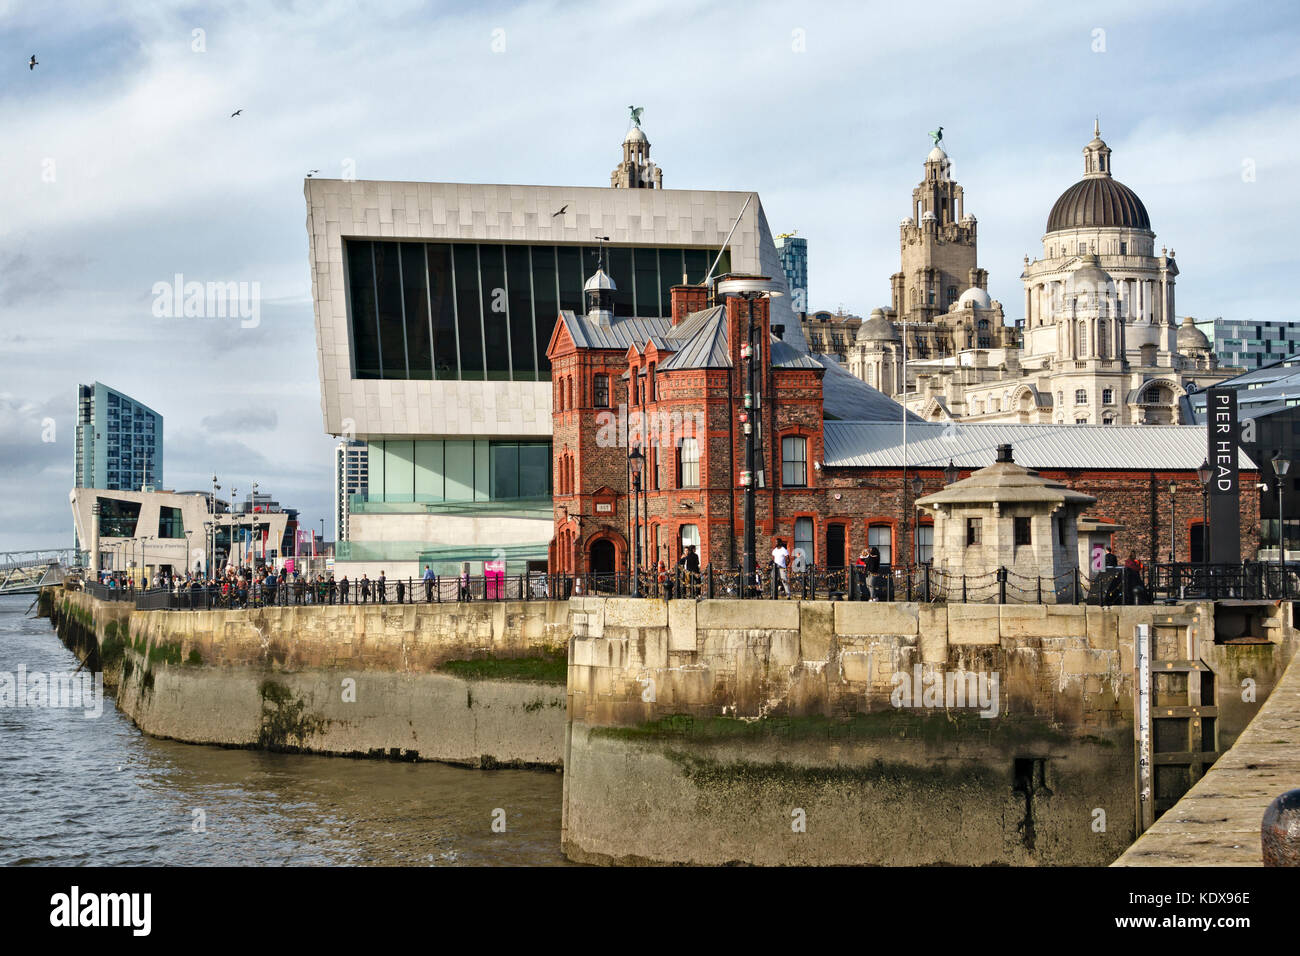 Pier Head, Liverpool. UK. The new Museum of Liverpool, with the Mersey Ferry Terminal and the Port of Liverpool - Stock Image